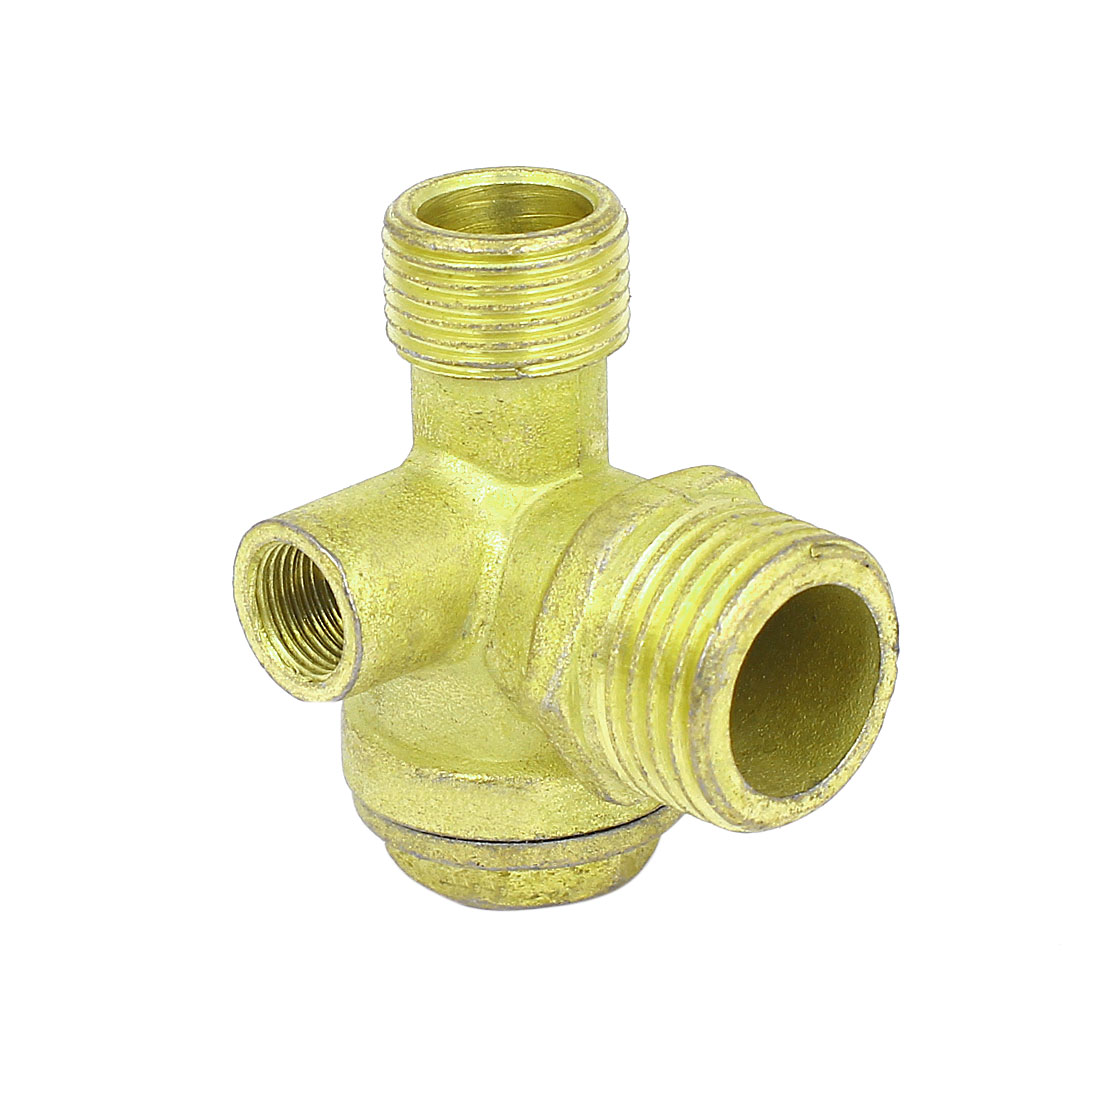 Air Compressor 1/2BSP x 3/8BSP x 1/8BSP Male Female Thread Brass Check Valve